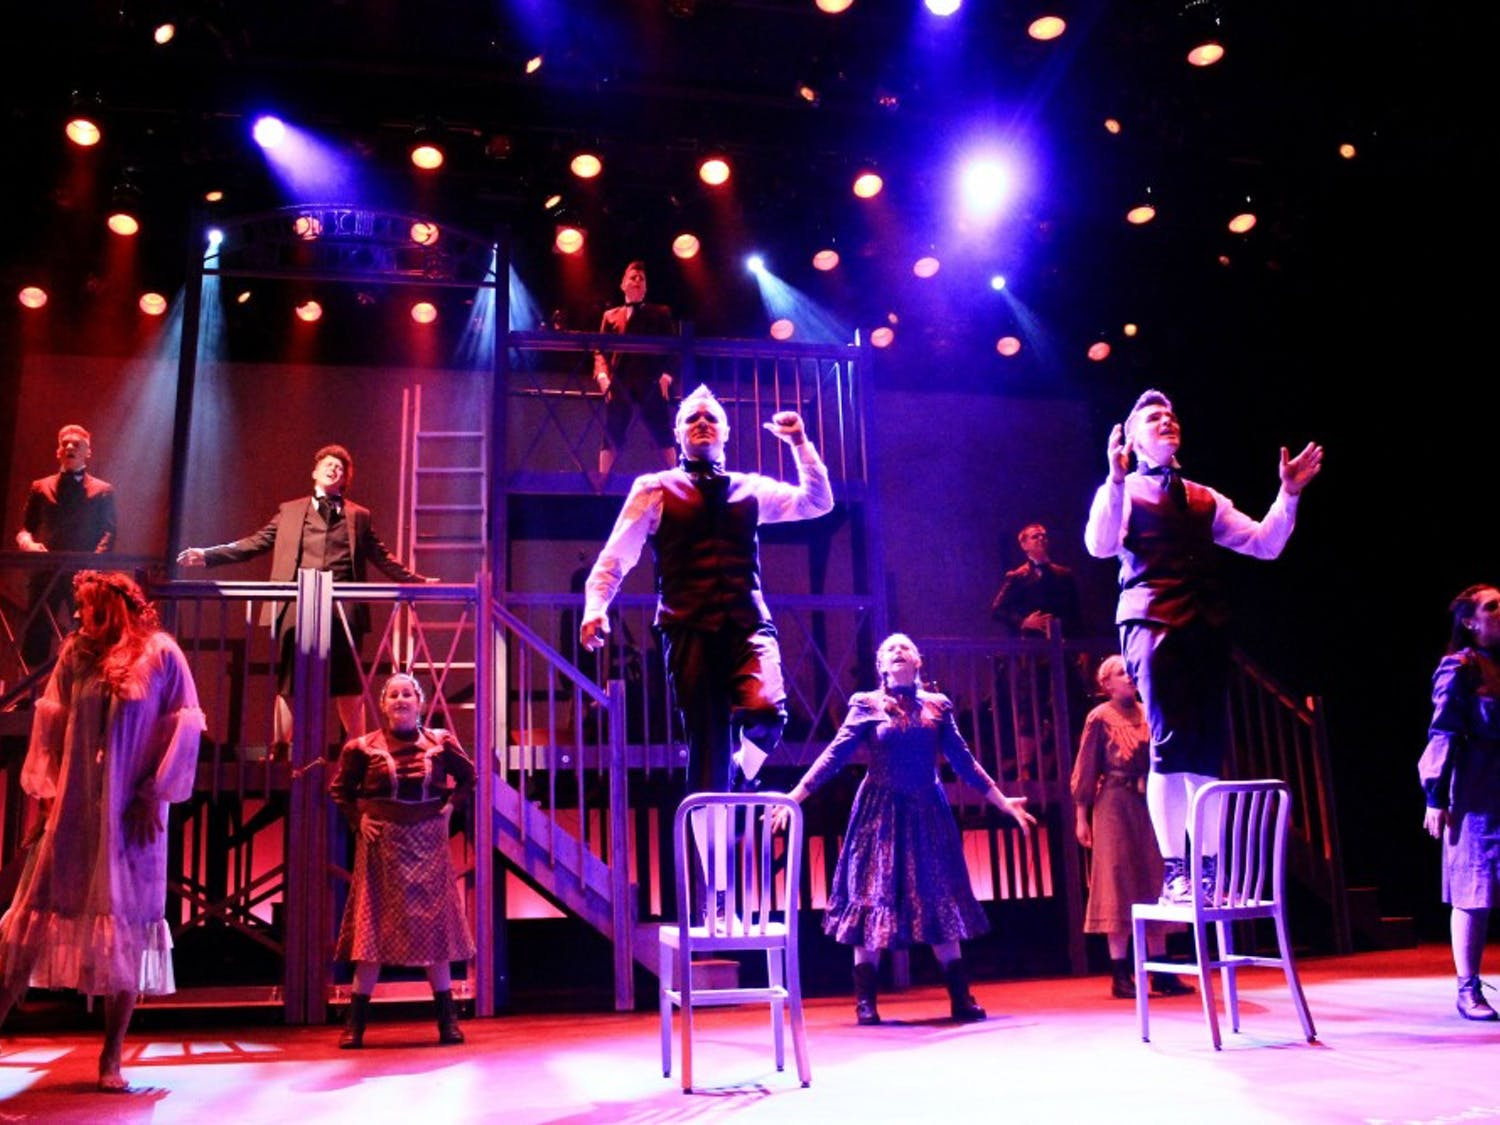 """The cast of MusicalFare's """"Spring Awakening"""" performs """"Totally F*cked"""" at Shea's 710 Theatre. """"Spring Awakening"""" is a controversial rock musical that explores teen sexuality in 19th century Germany."""